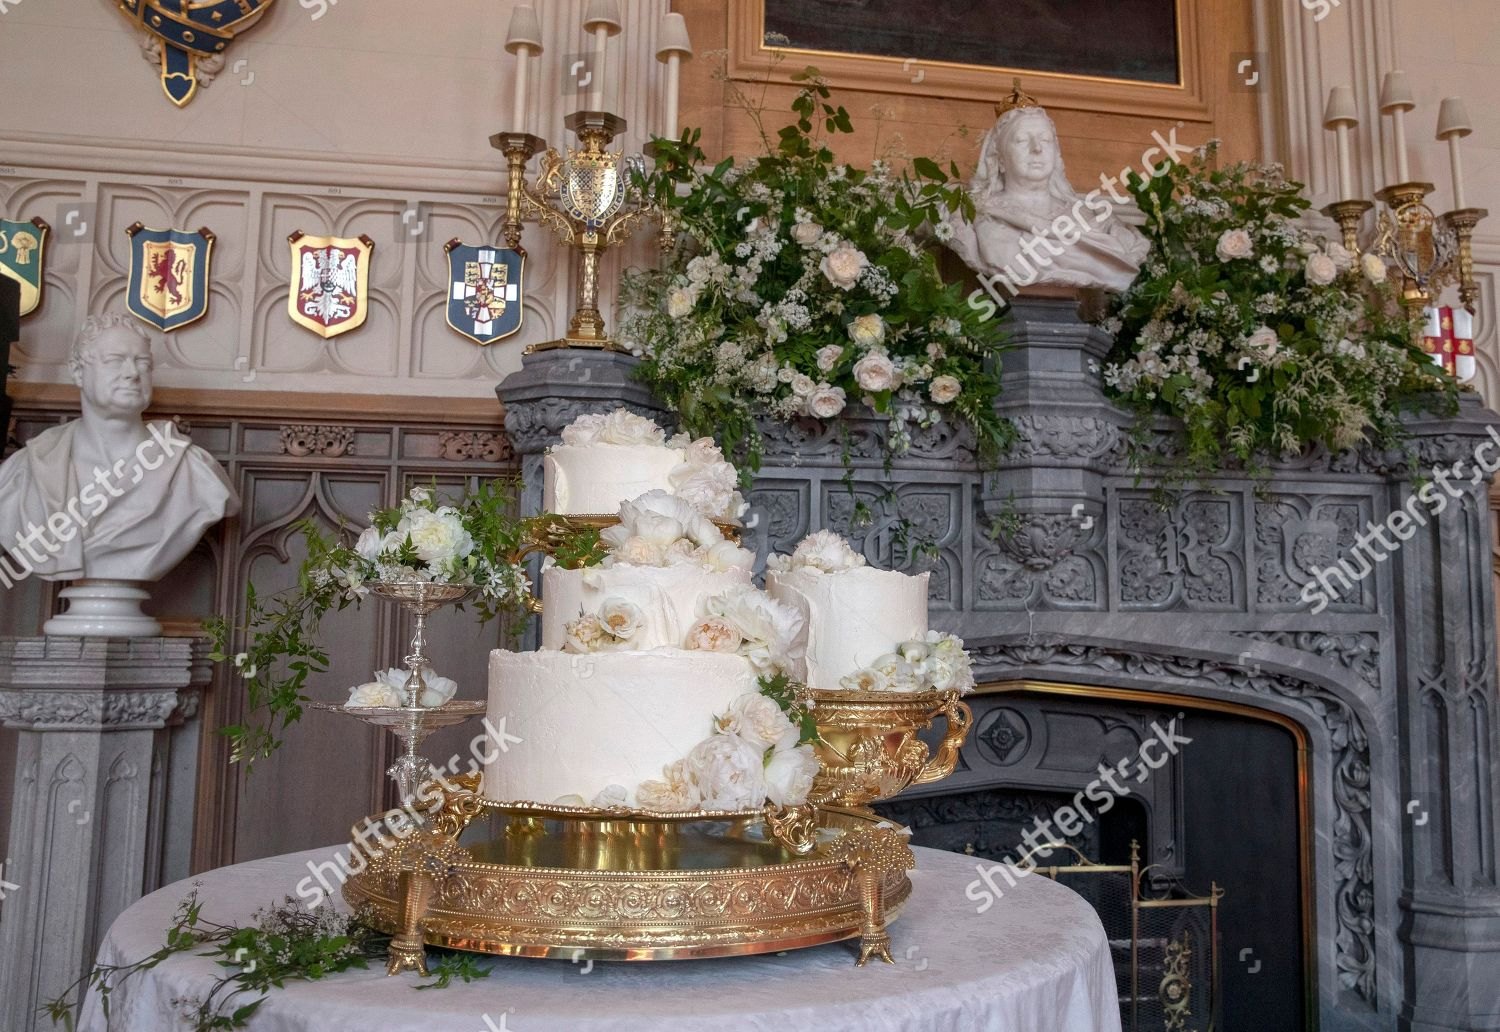 Wedding Cake By Claire Ptak Londonbased Bakery Redaktionelles